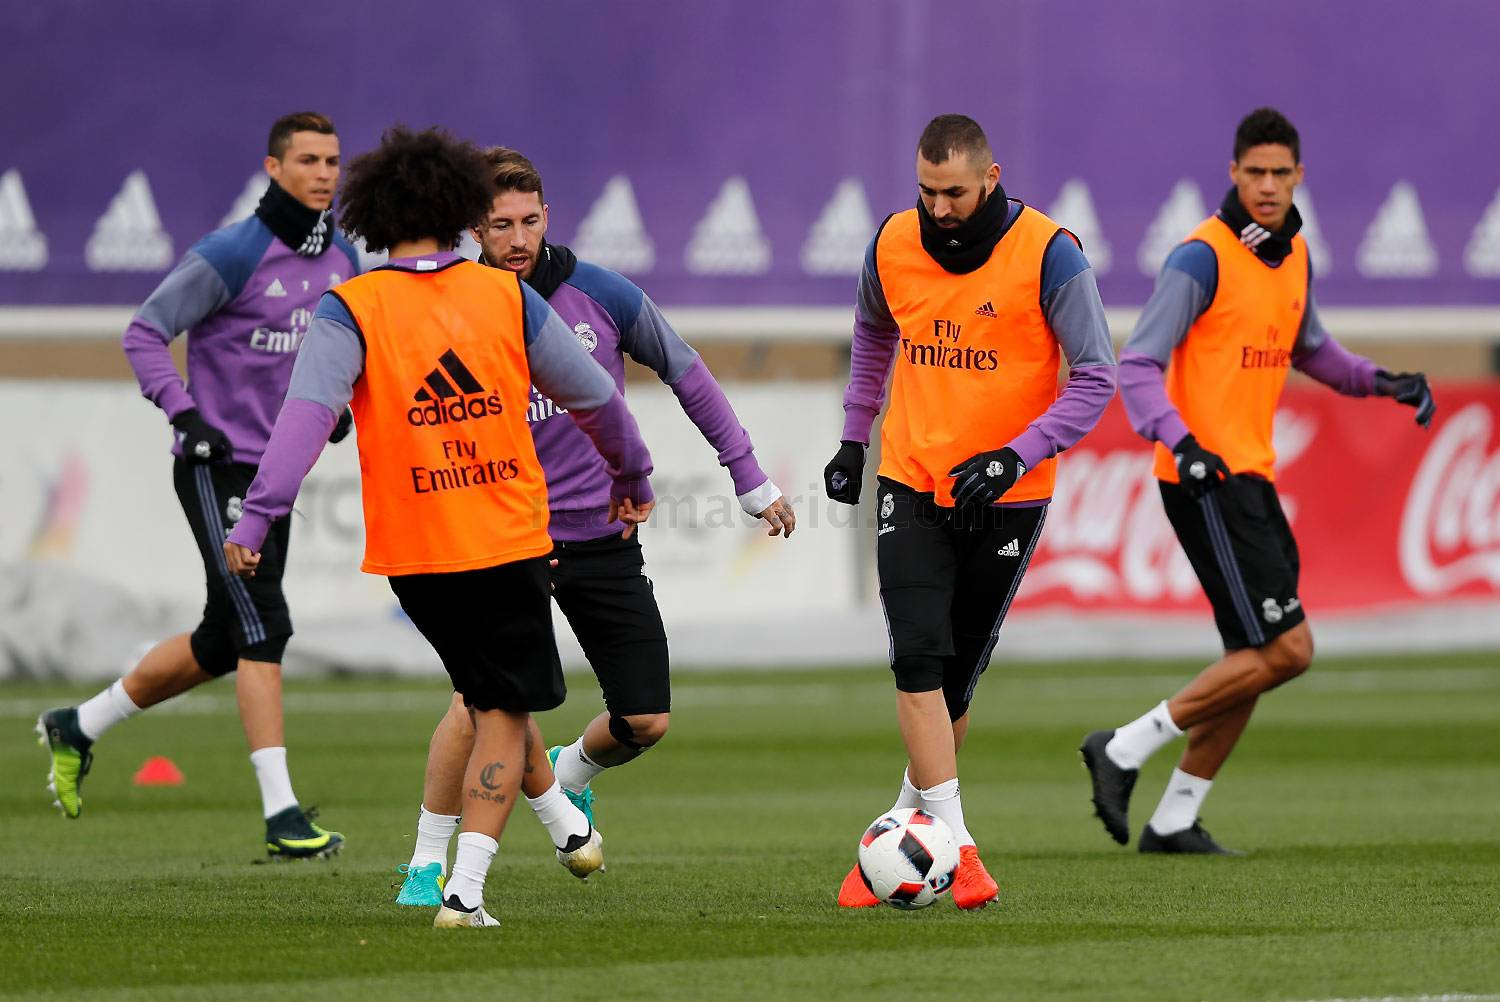 Real Madrid - Entrenamiento del Real Madrid - 29-11-2016